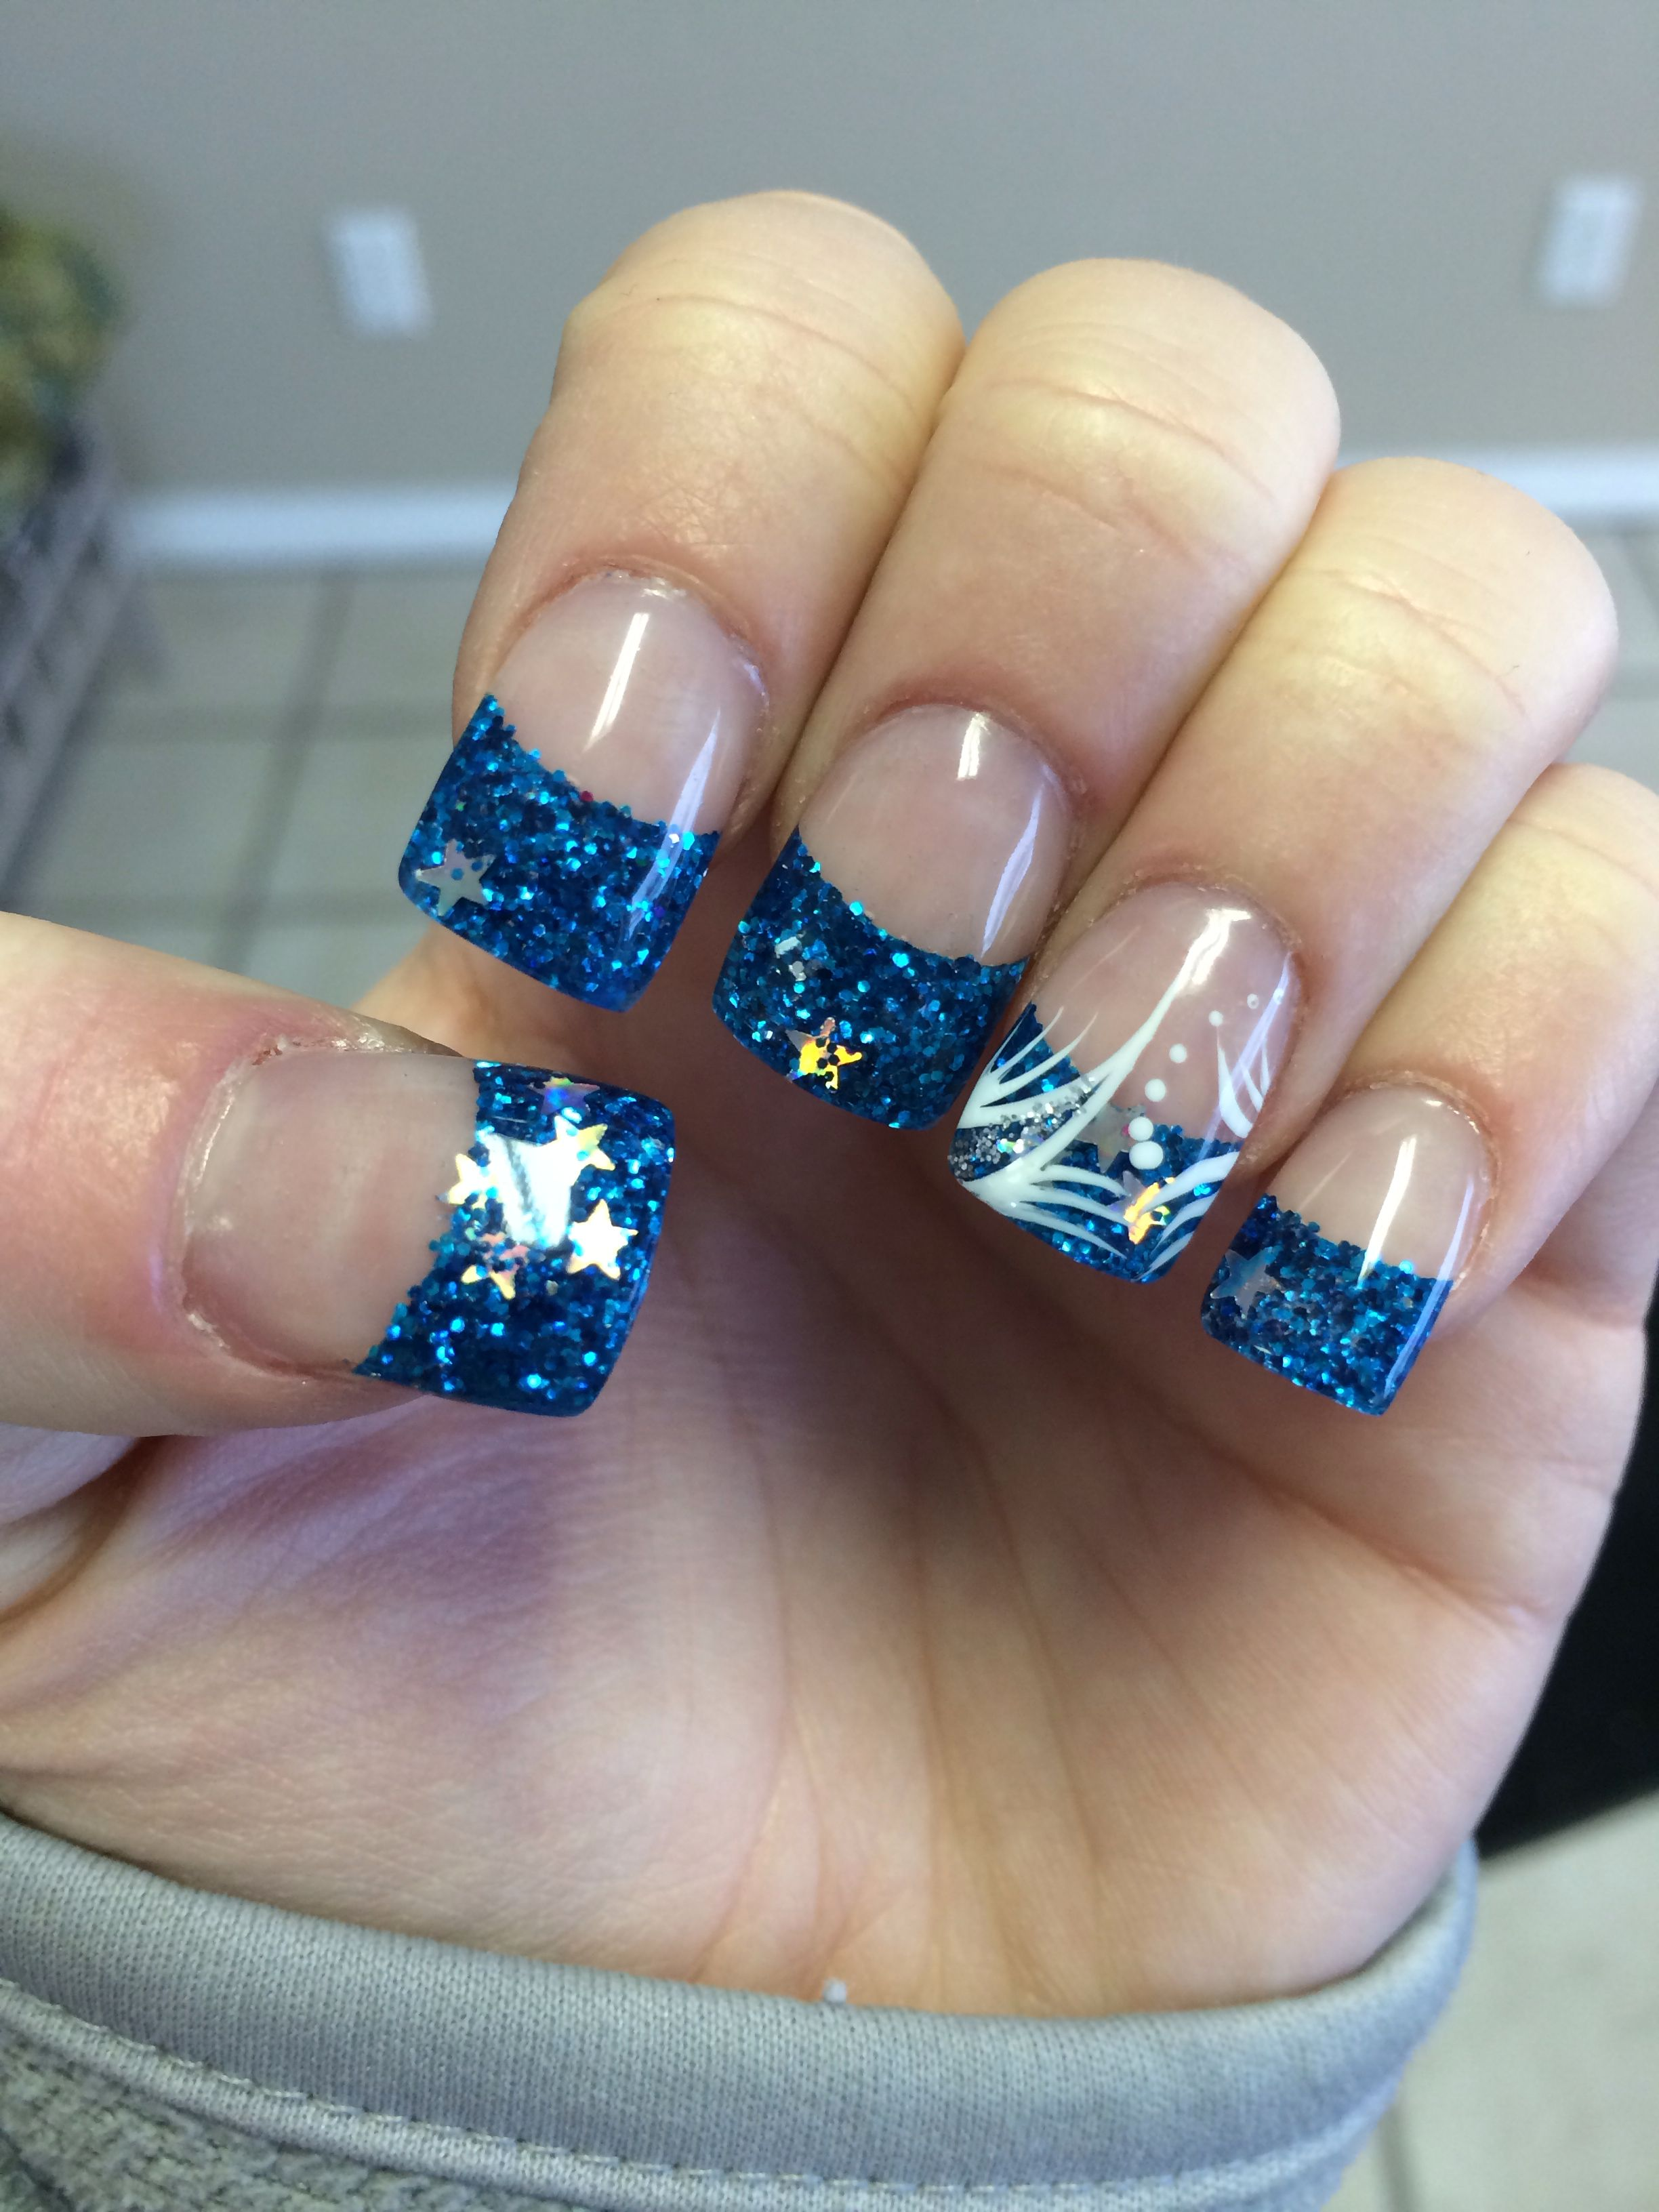 Blue Glitter Tip Nails With Silver Stars With White And Silver